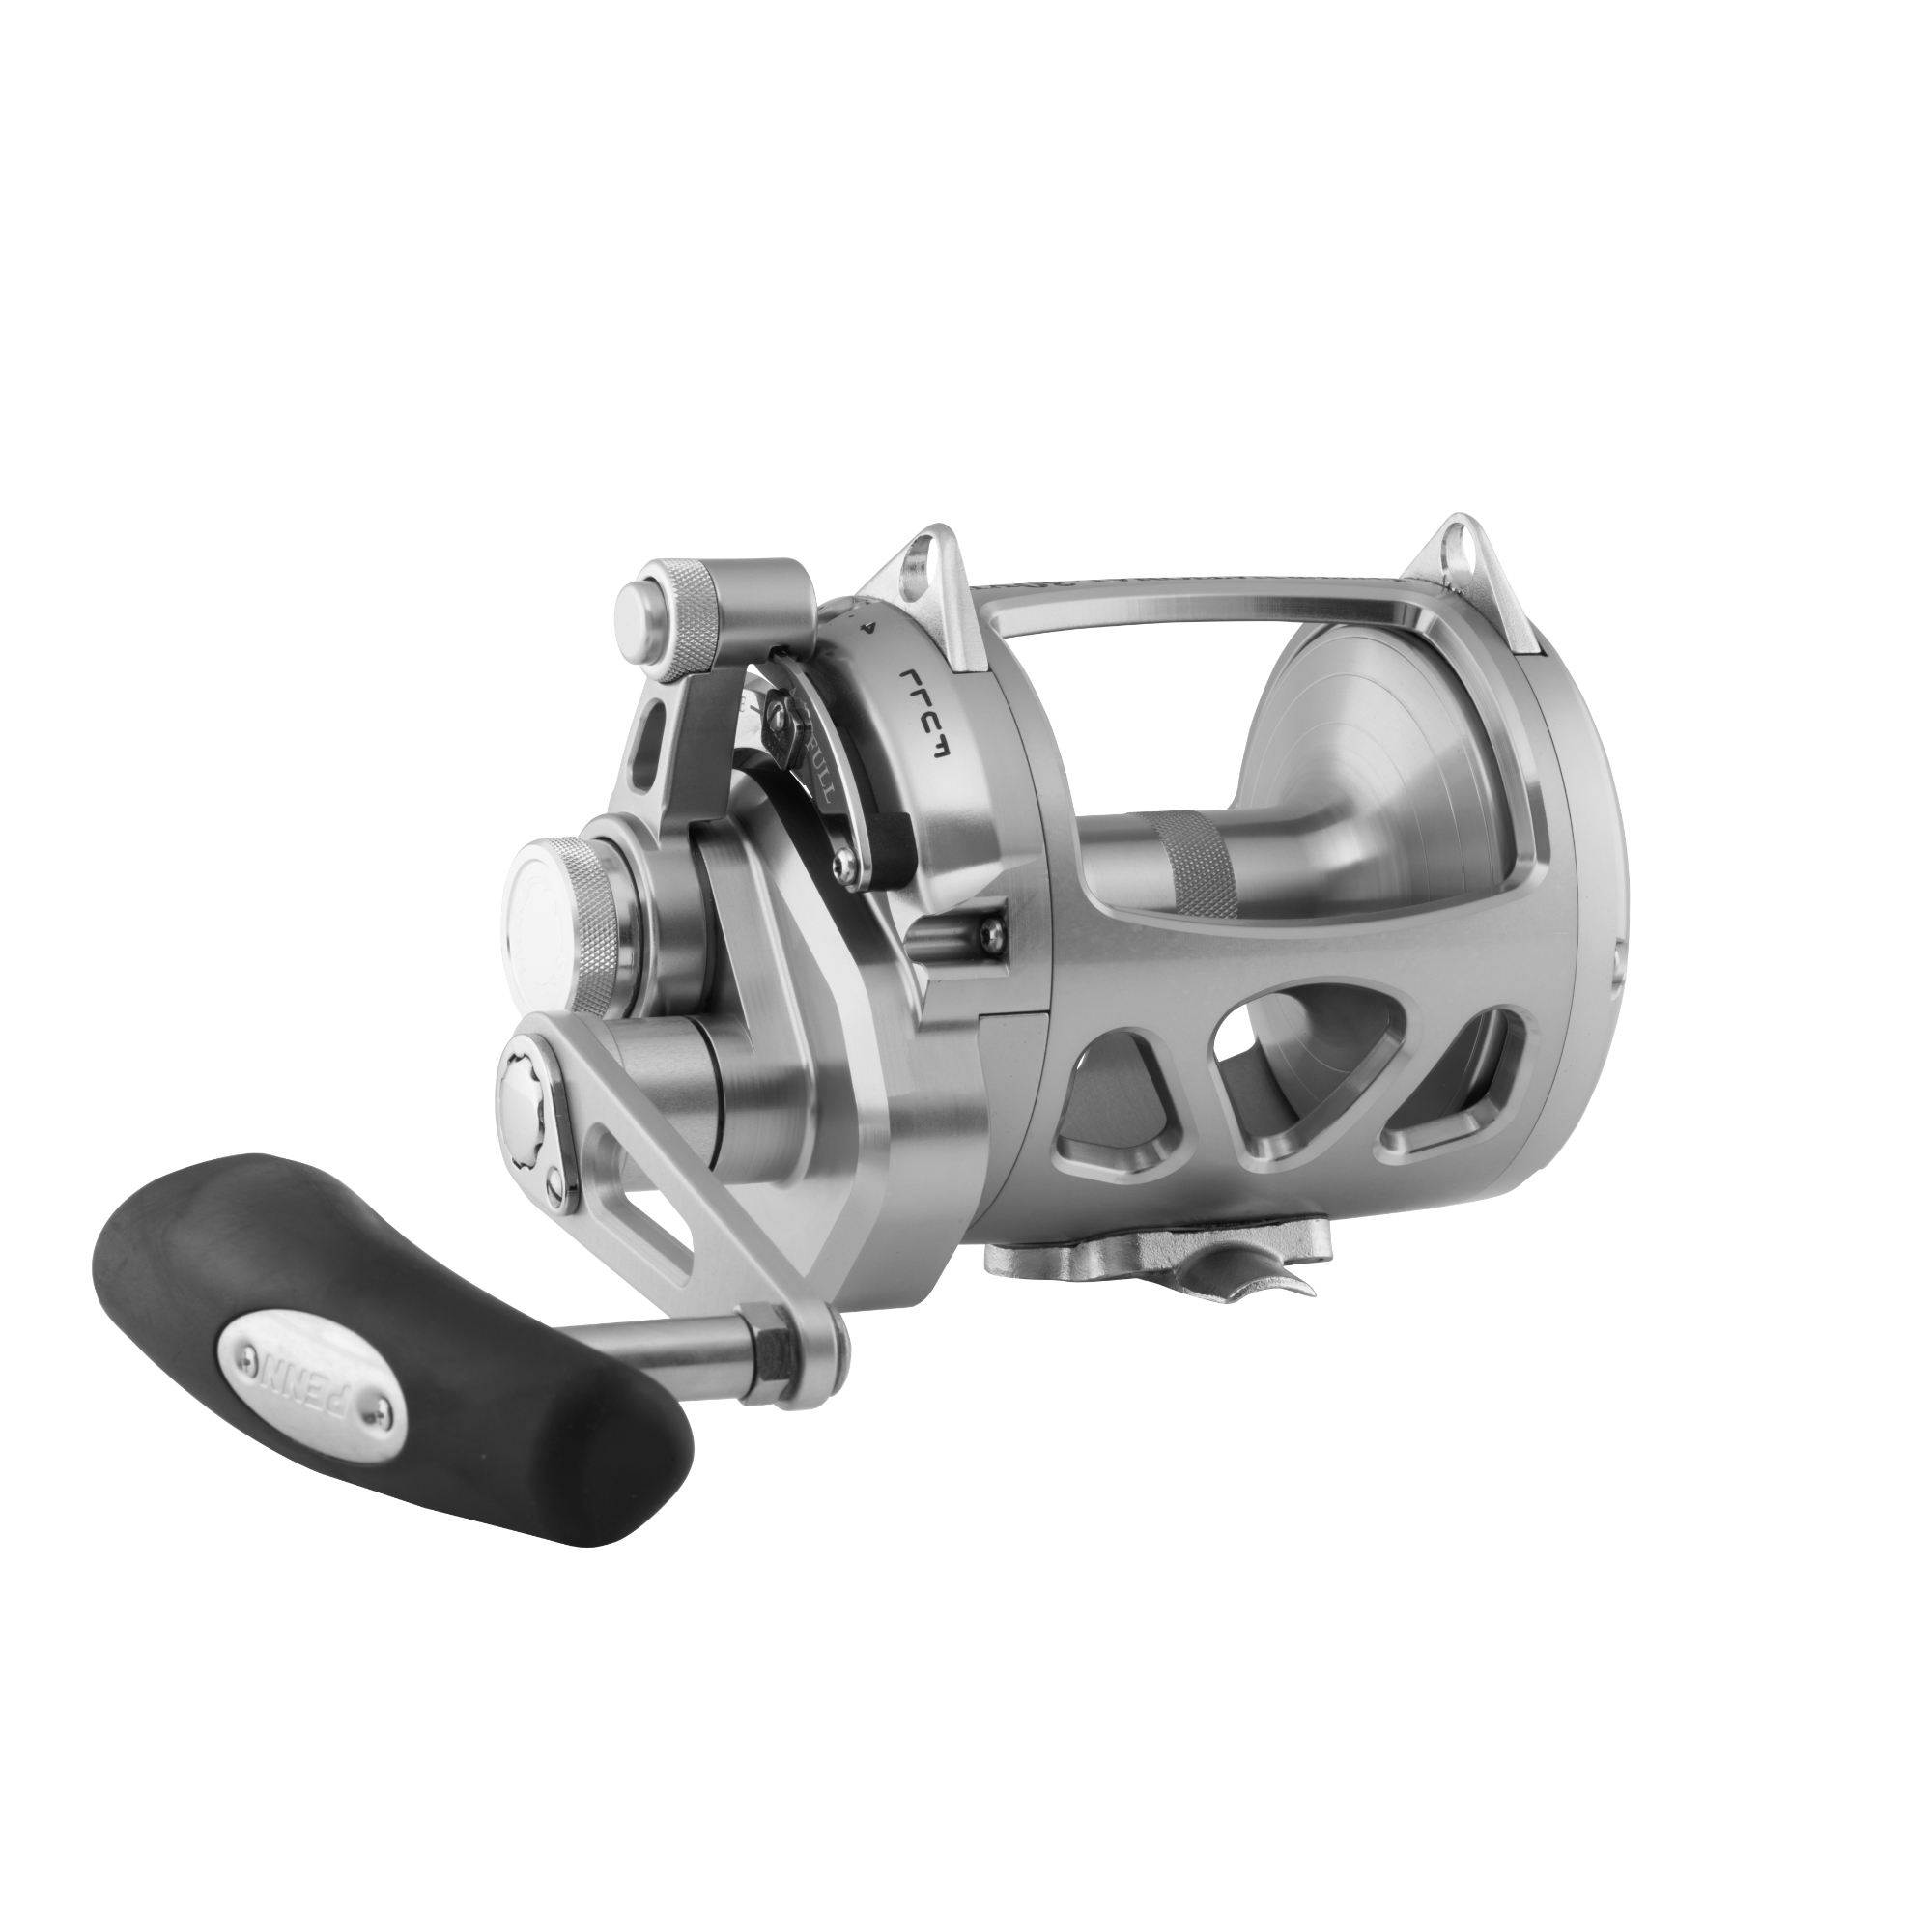 Penn INT30VIWS Silver International VI Reel